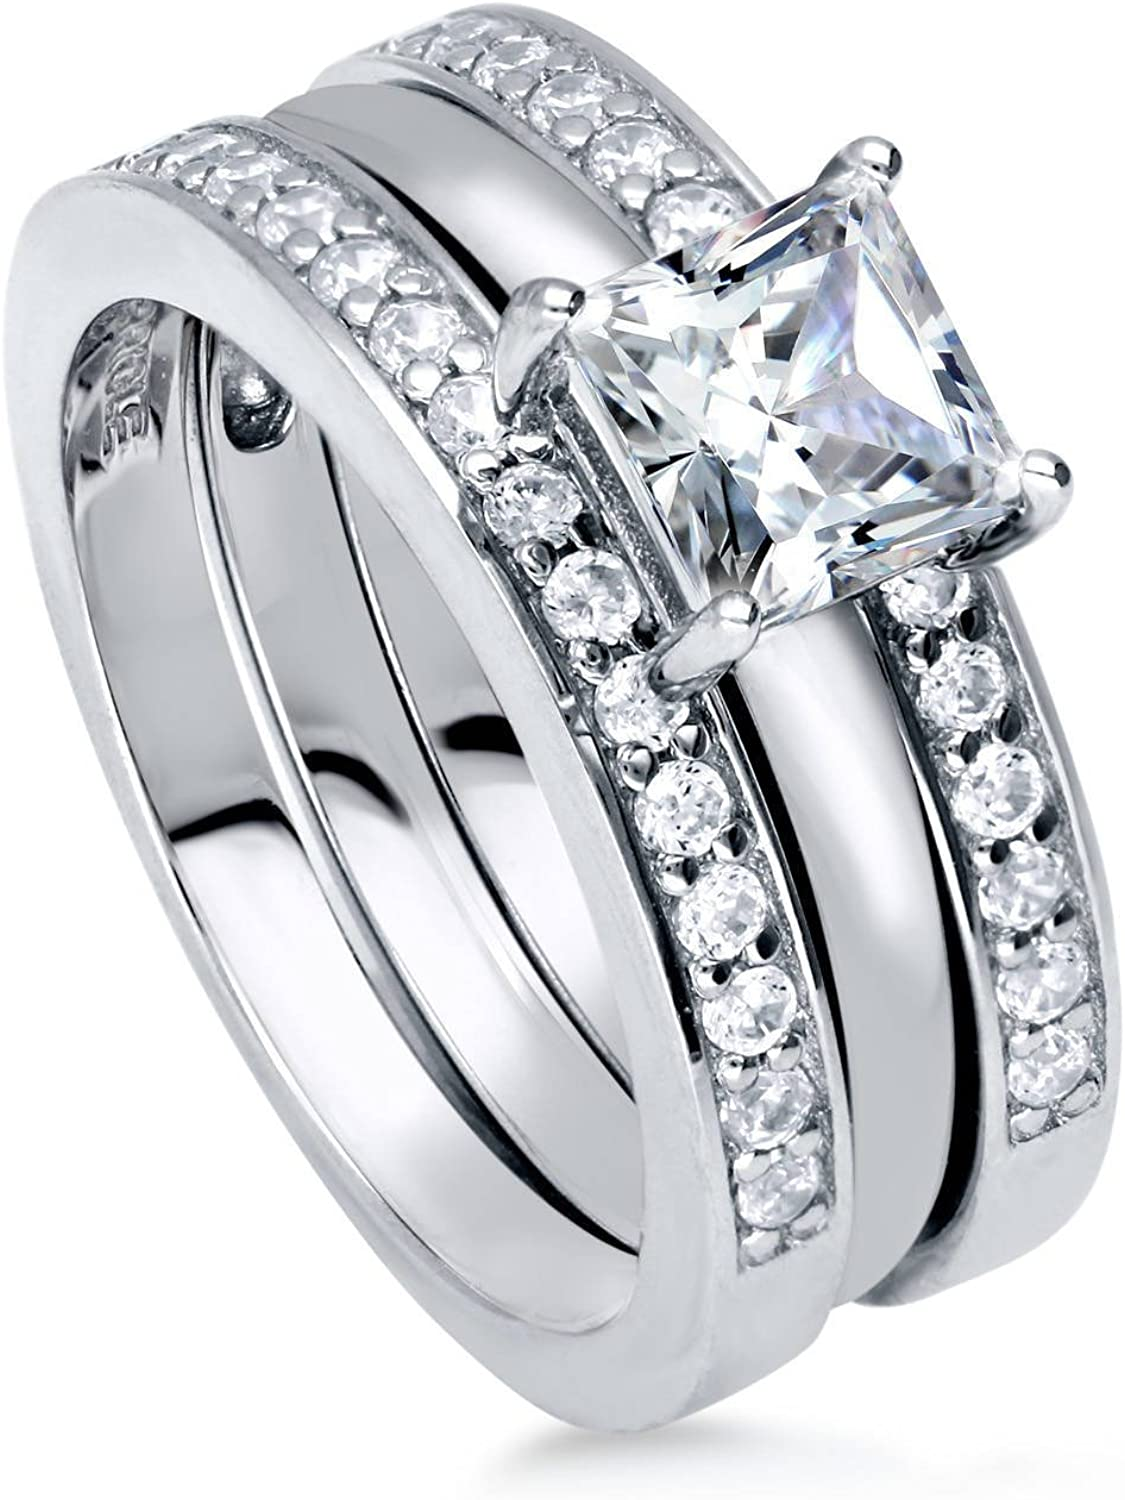 BERRICLE Rhodium Plated Sterling Silver Cut Zirco High material Princess Cubic Online limited product